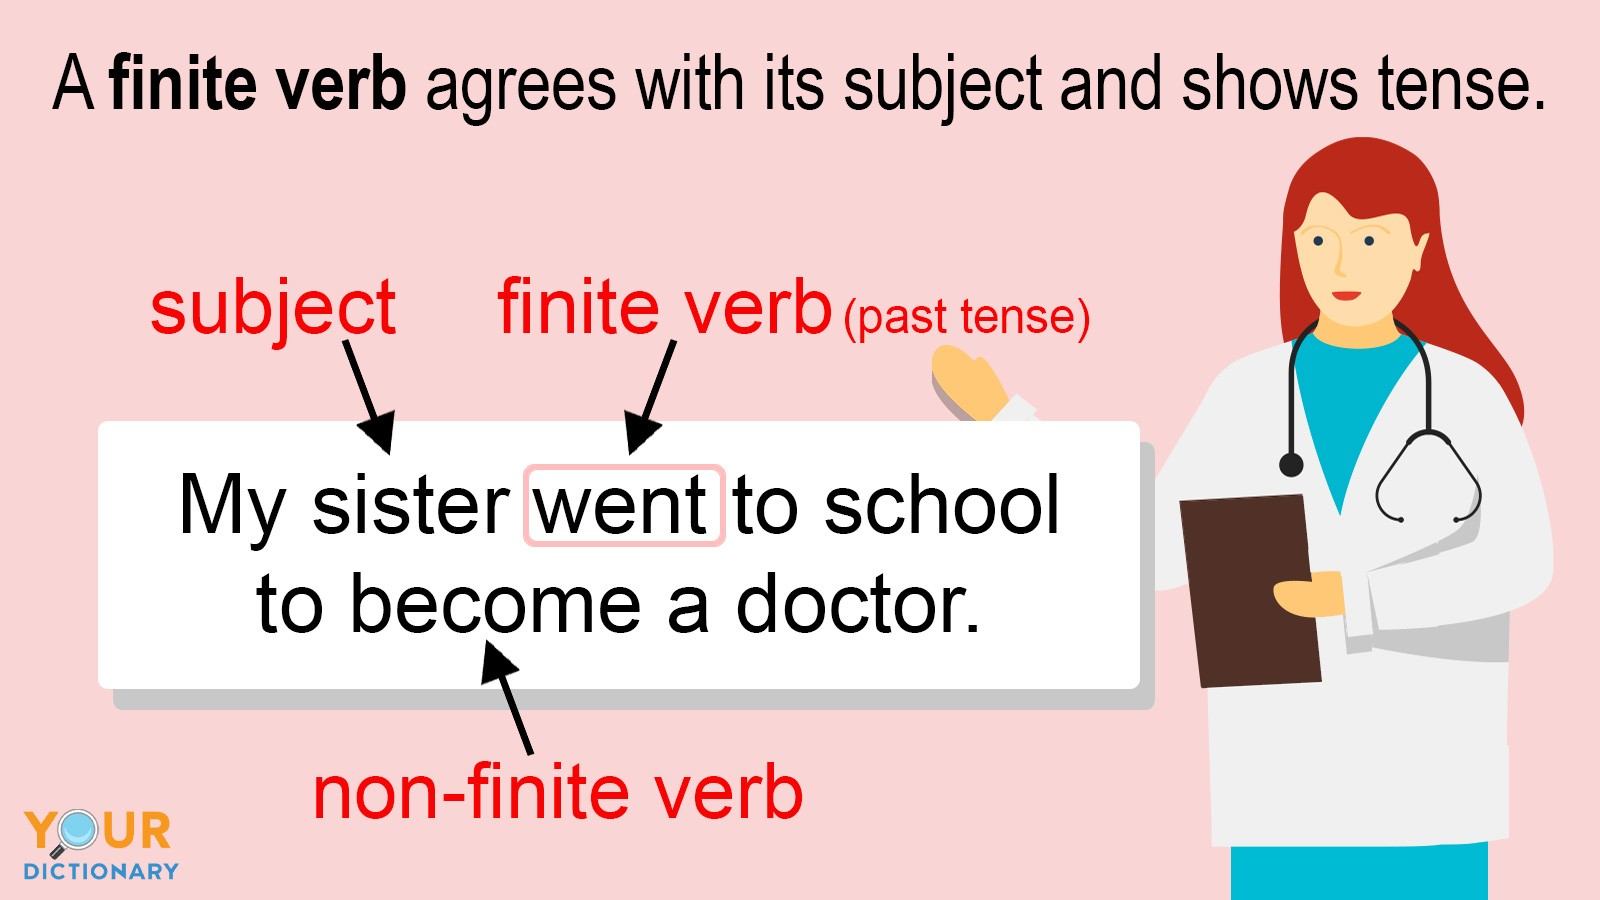 finite verb has subject and shows tense